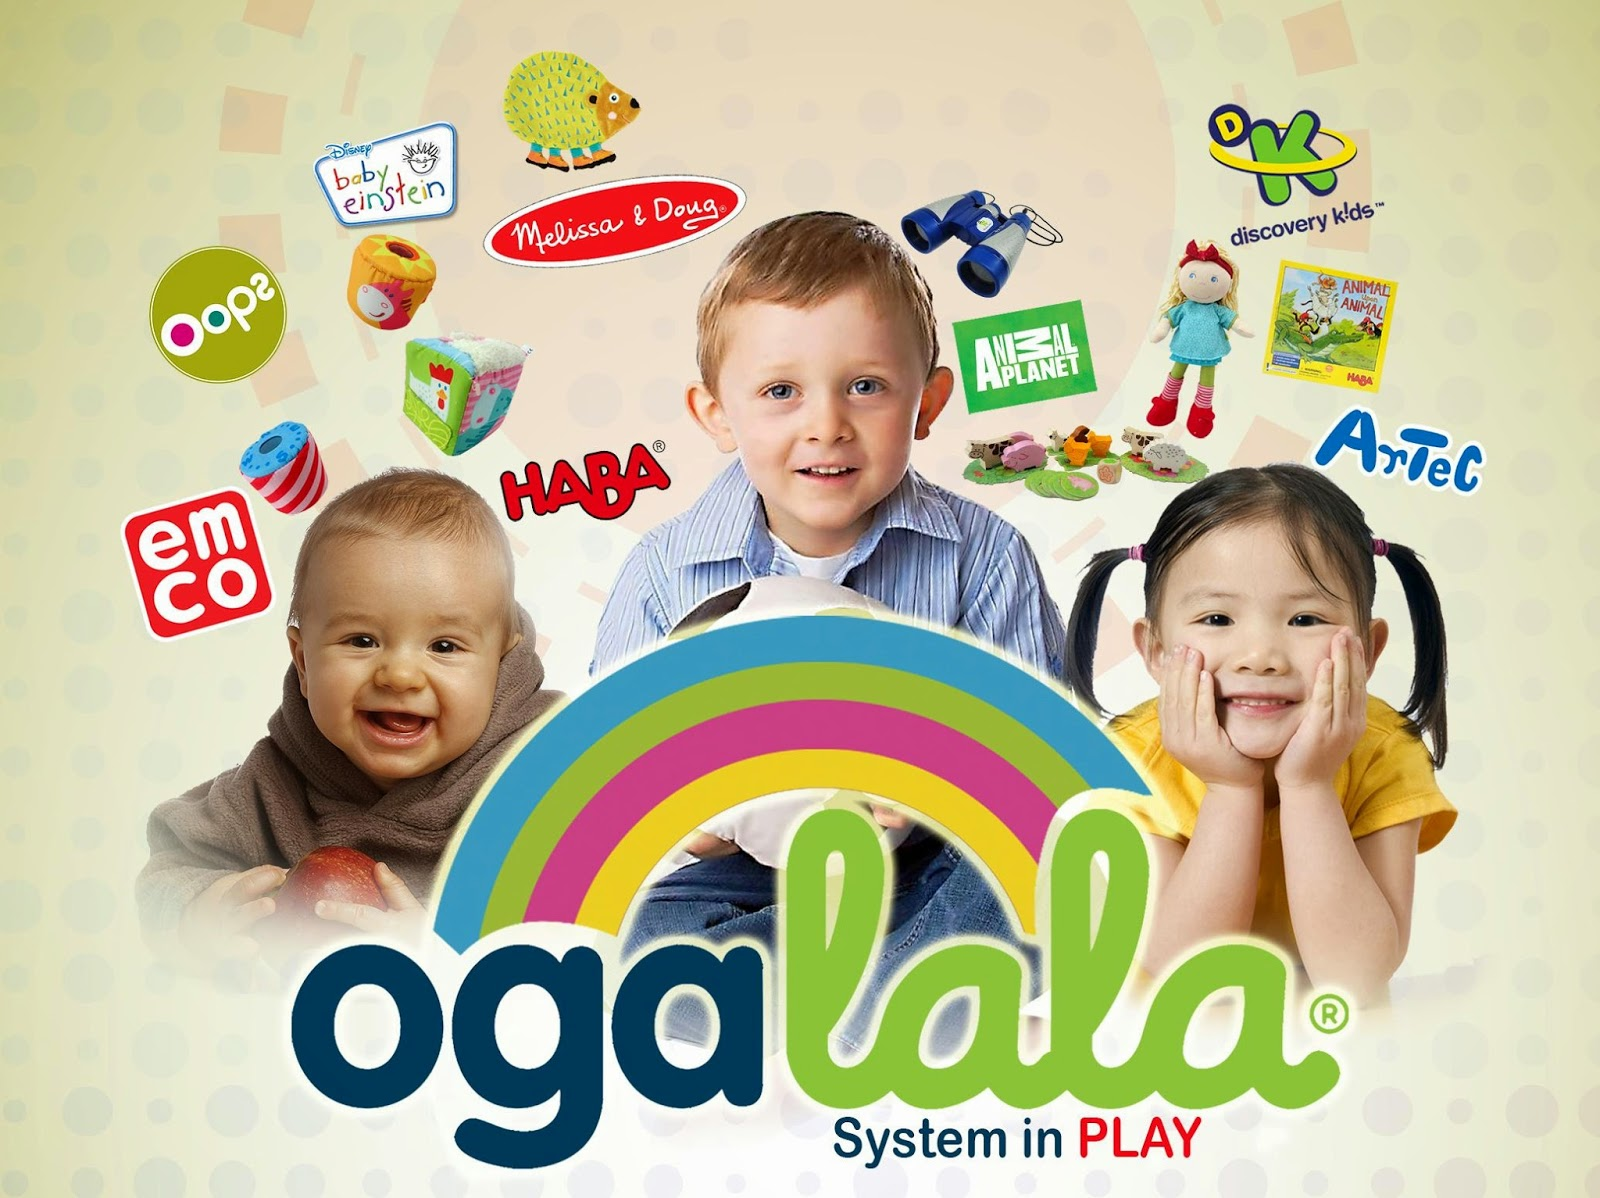 Maye Yao Co Say makes motherhood fun and fulfilling with Ogalala